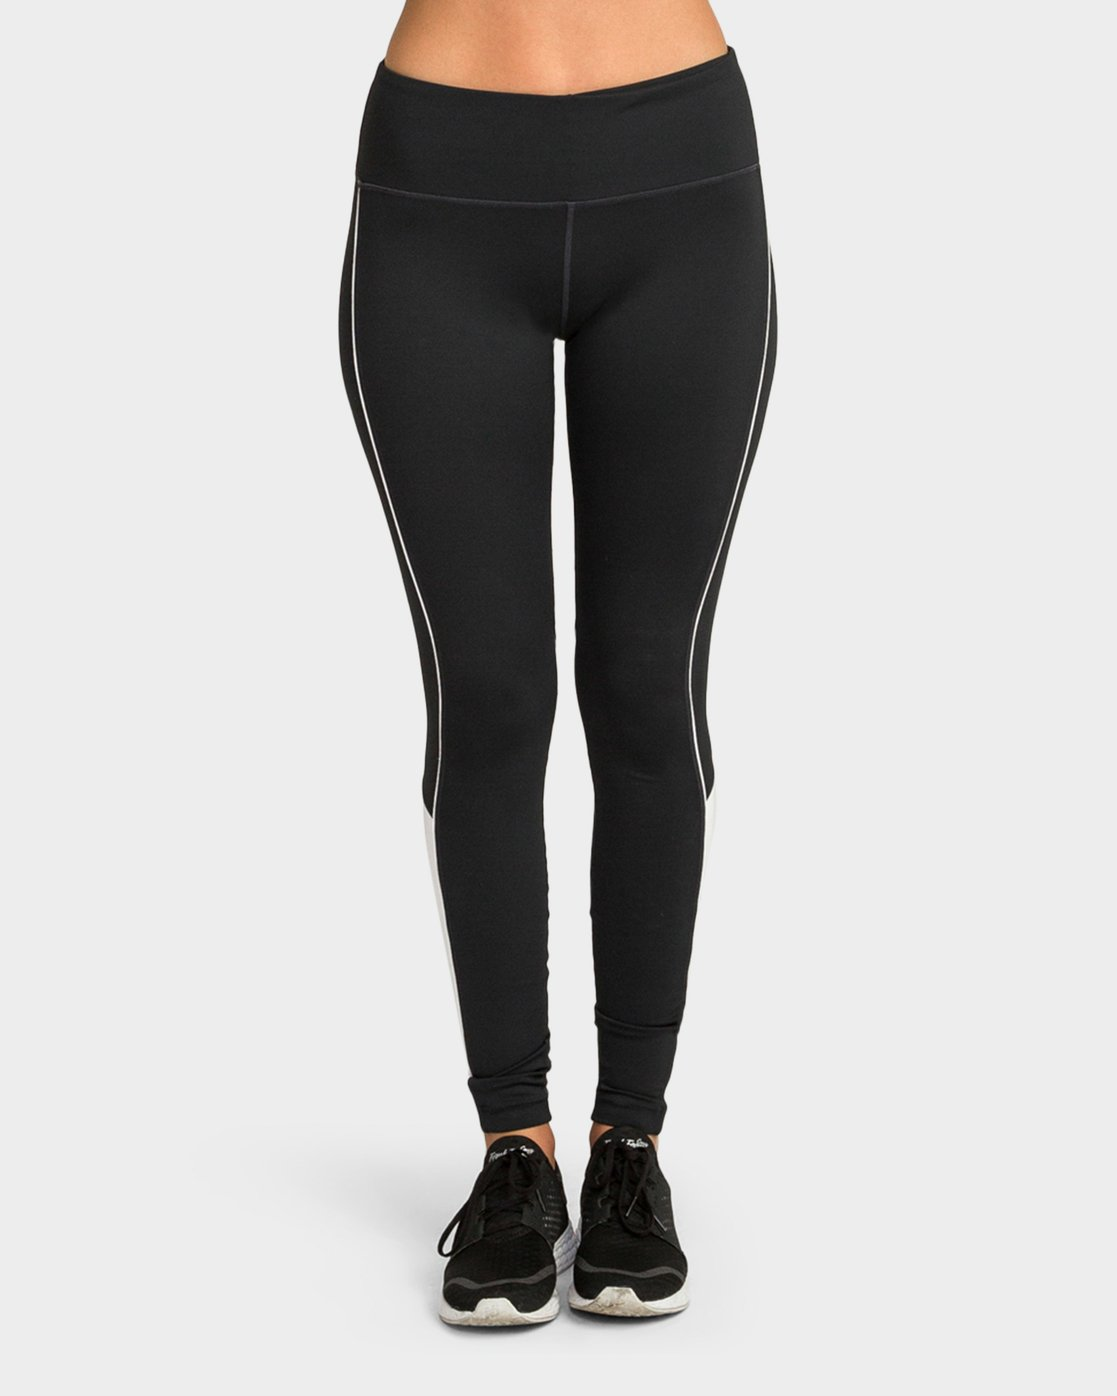 0 Va Legging Black R481271 RVCA